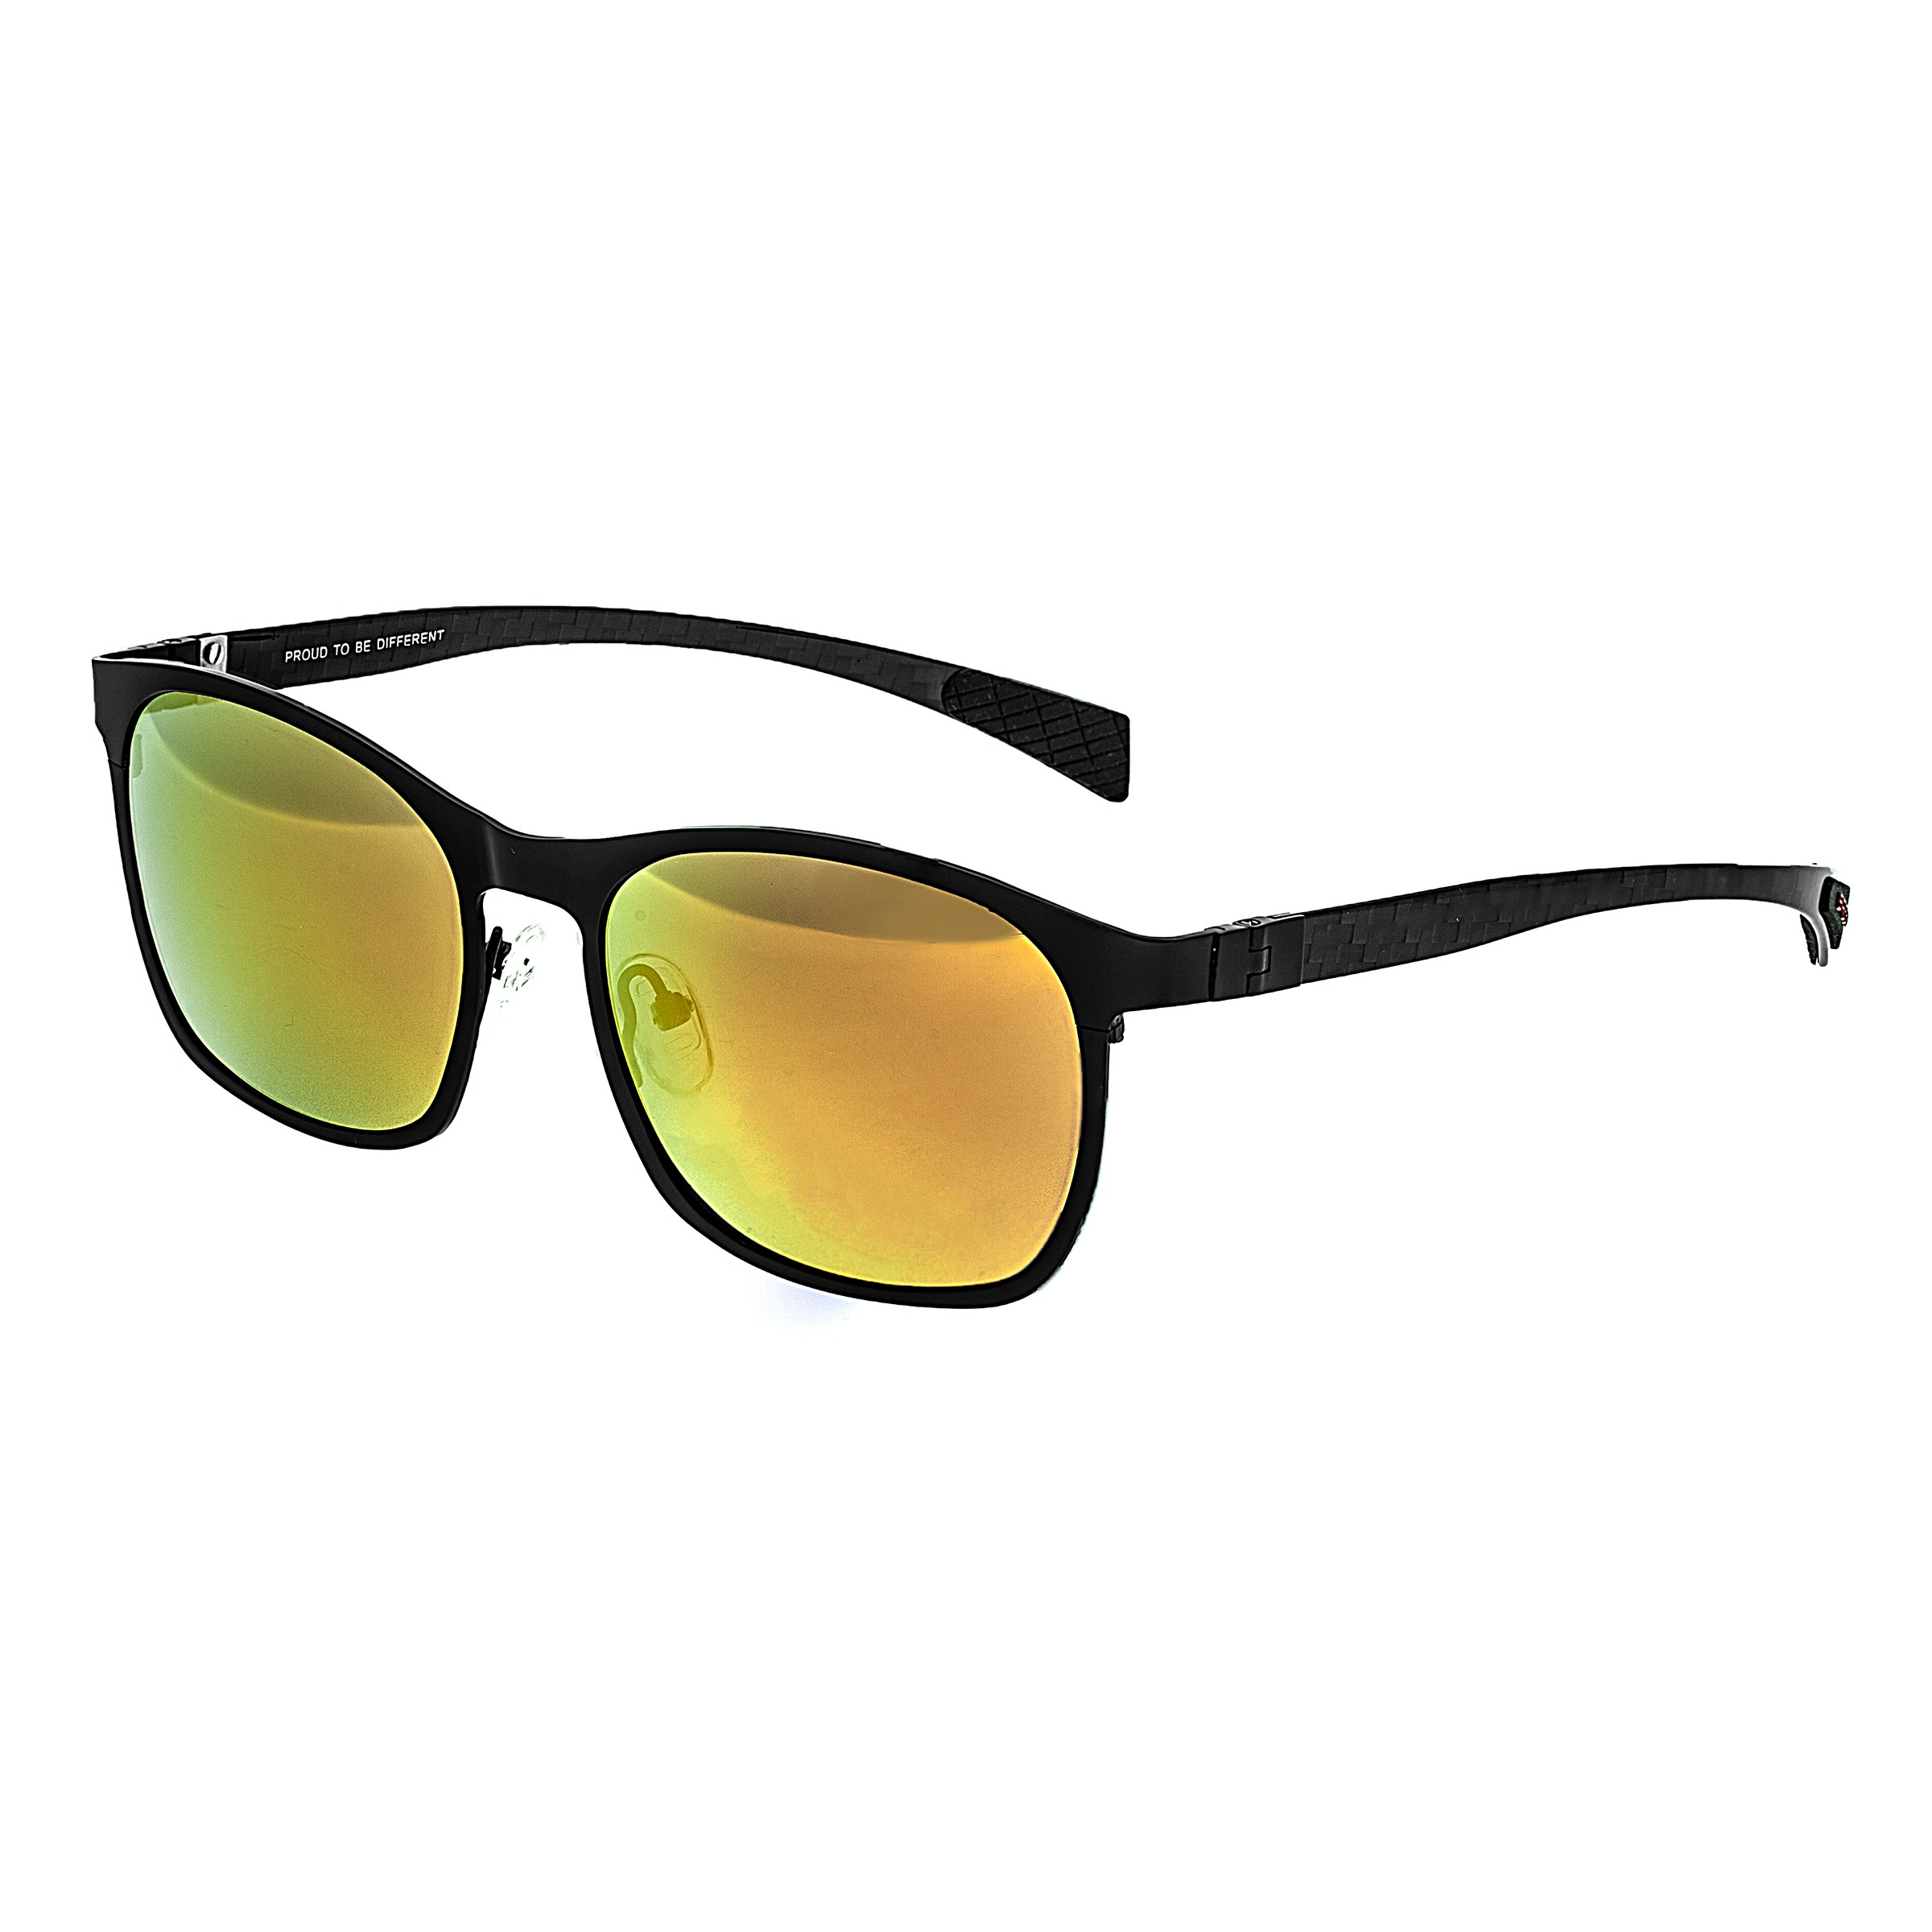 db9a8ebce100 Breed Breed Halley Sunglasses, Up to 60% Off with Free S&H — CampSaver